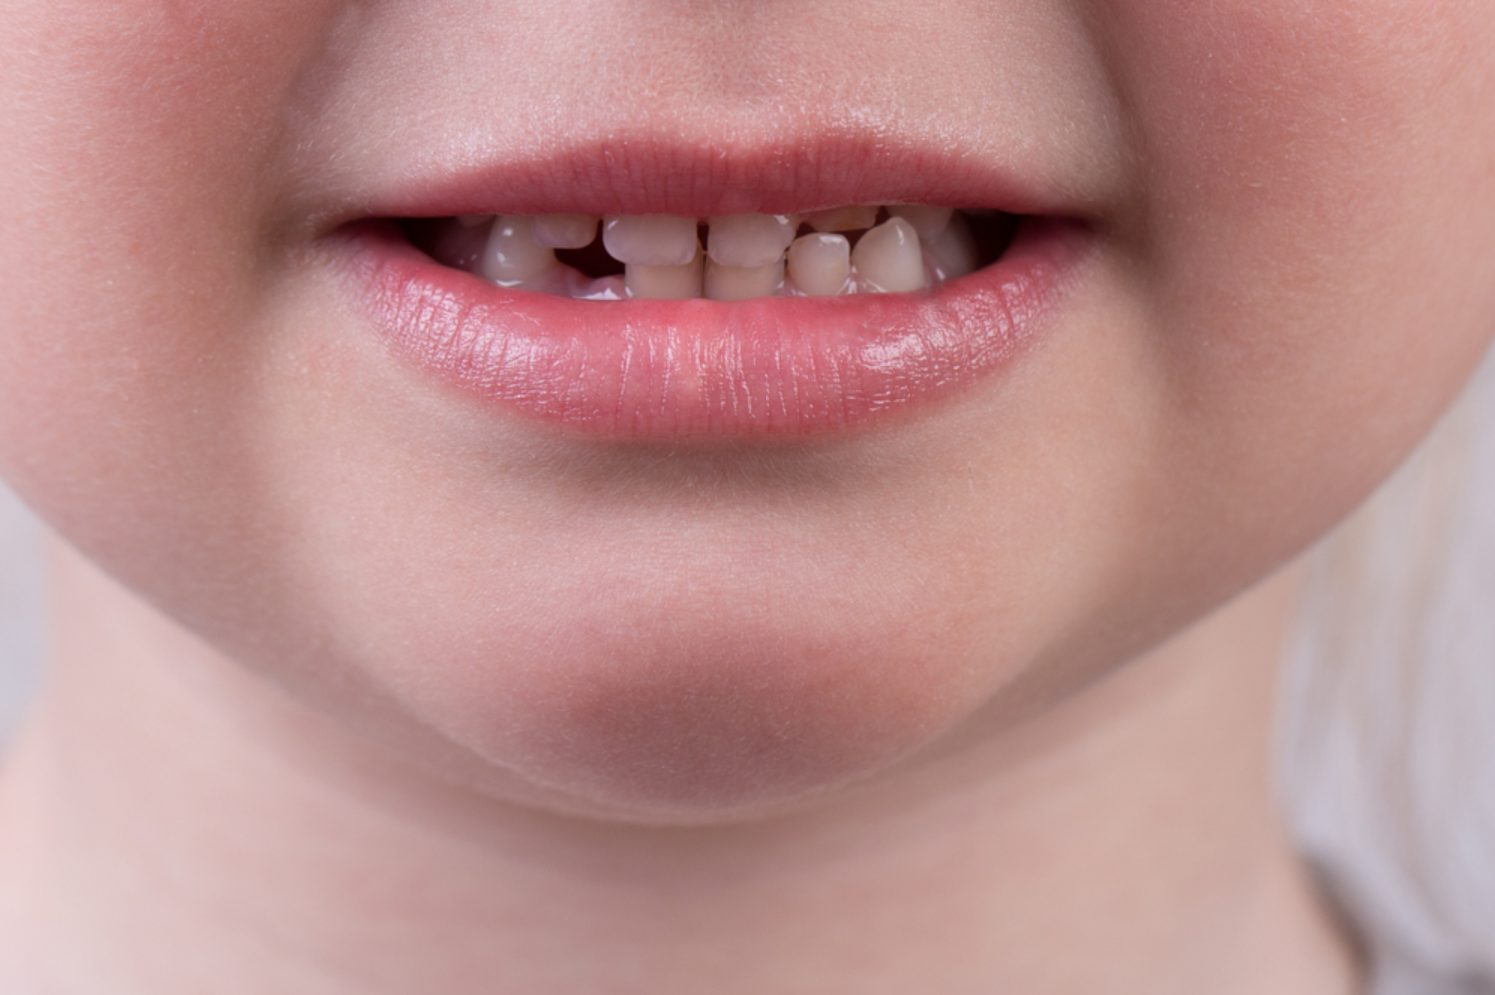 an image of a a kid's chipped teeth